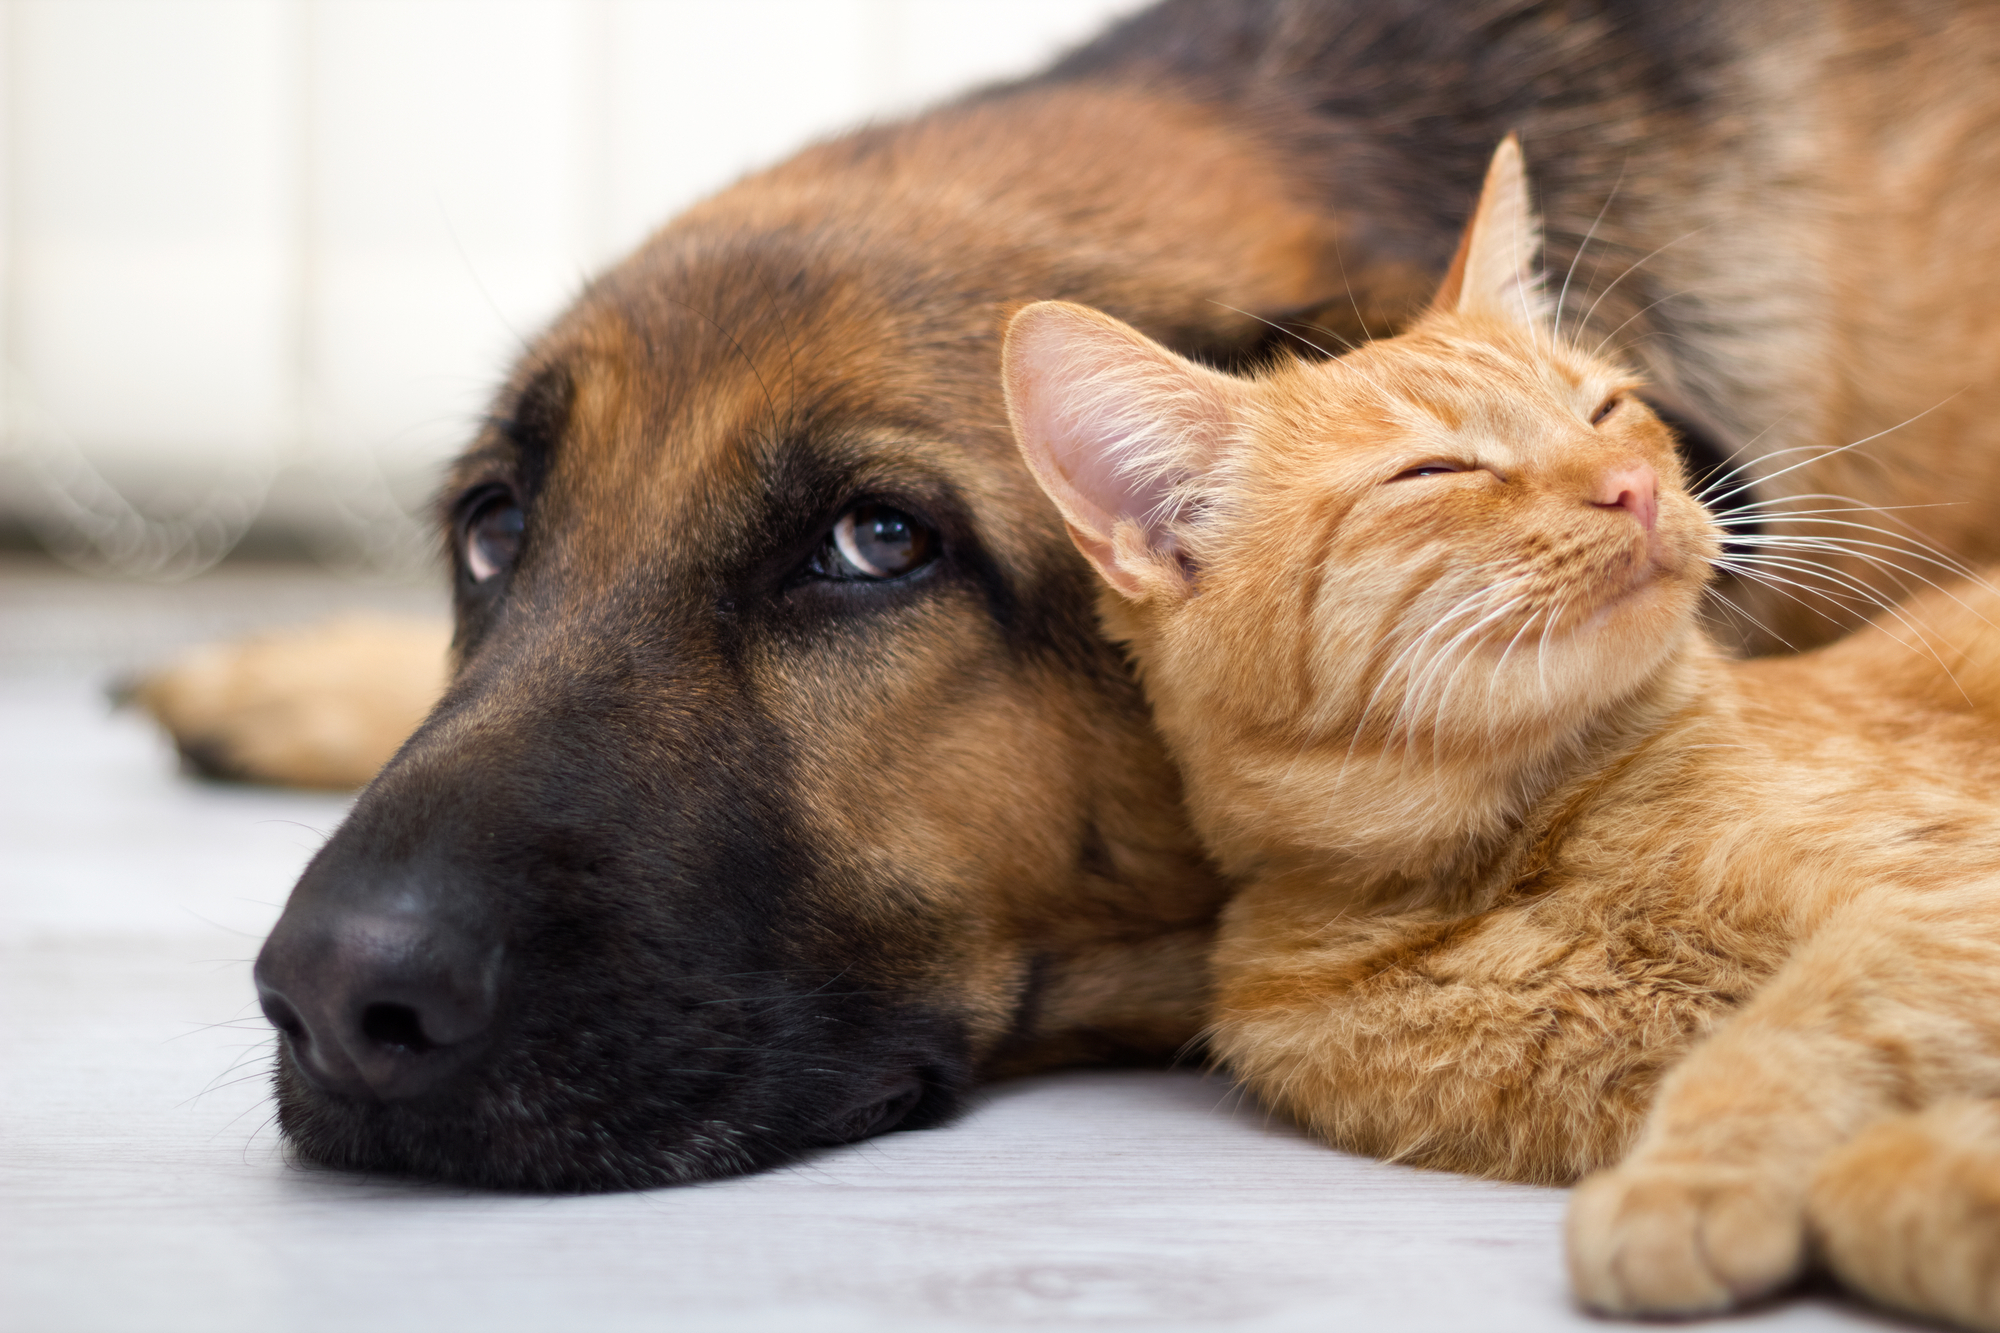 advertorial, implies cats and dogs get along better with CBD